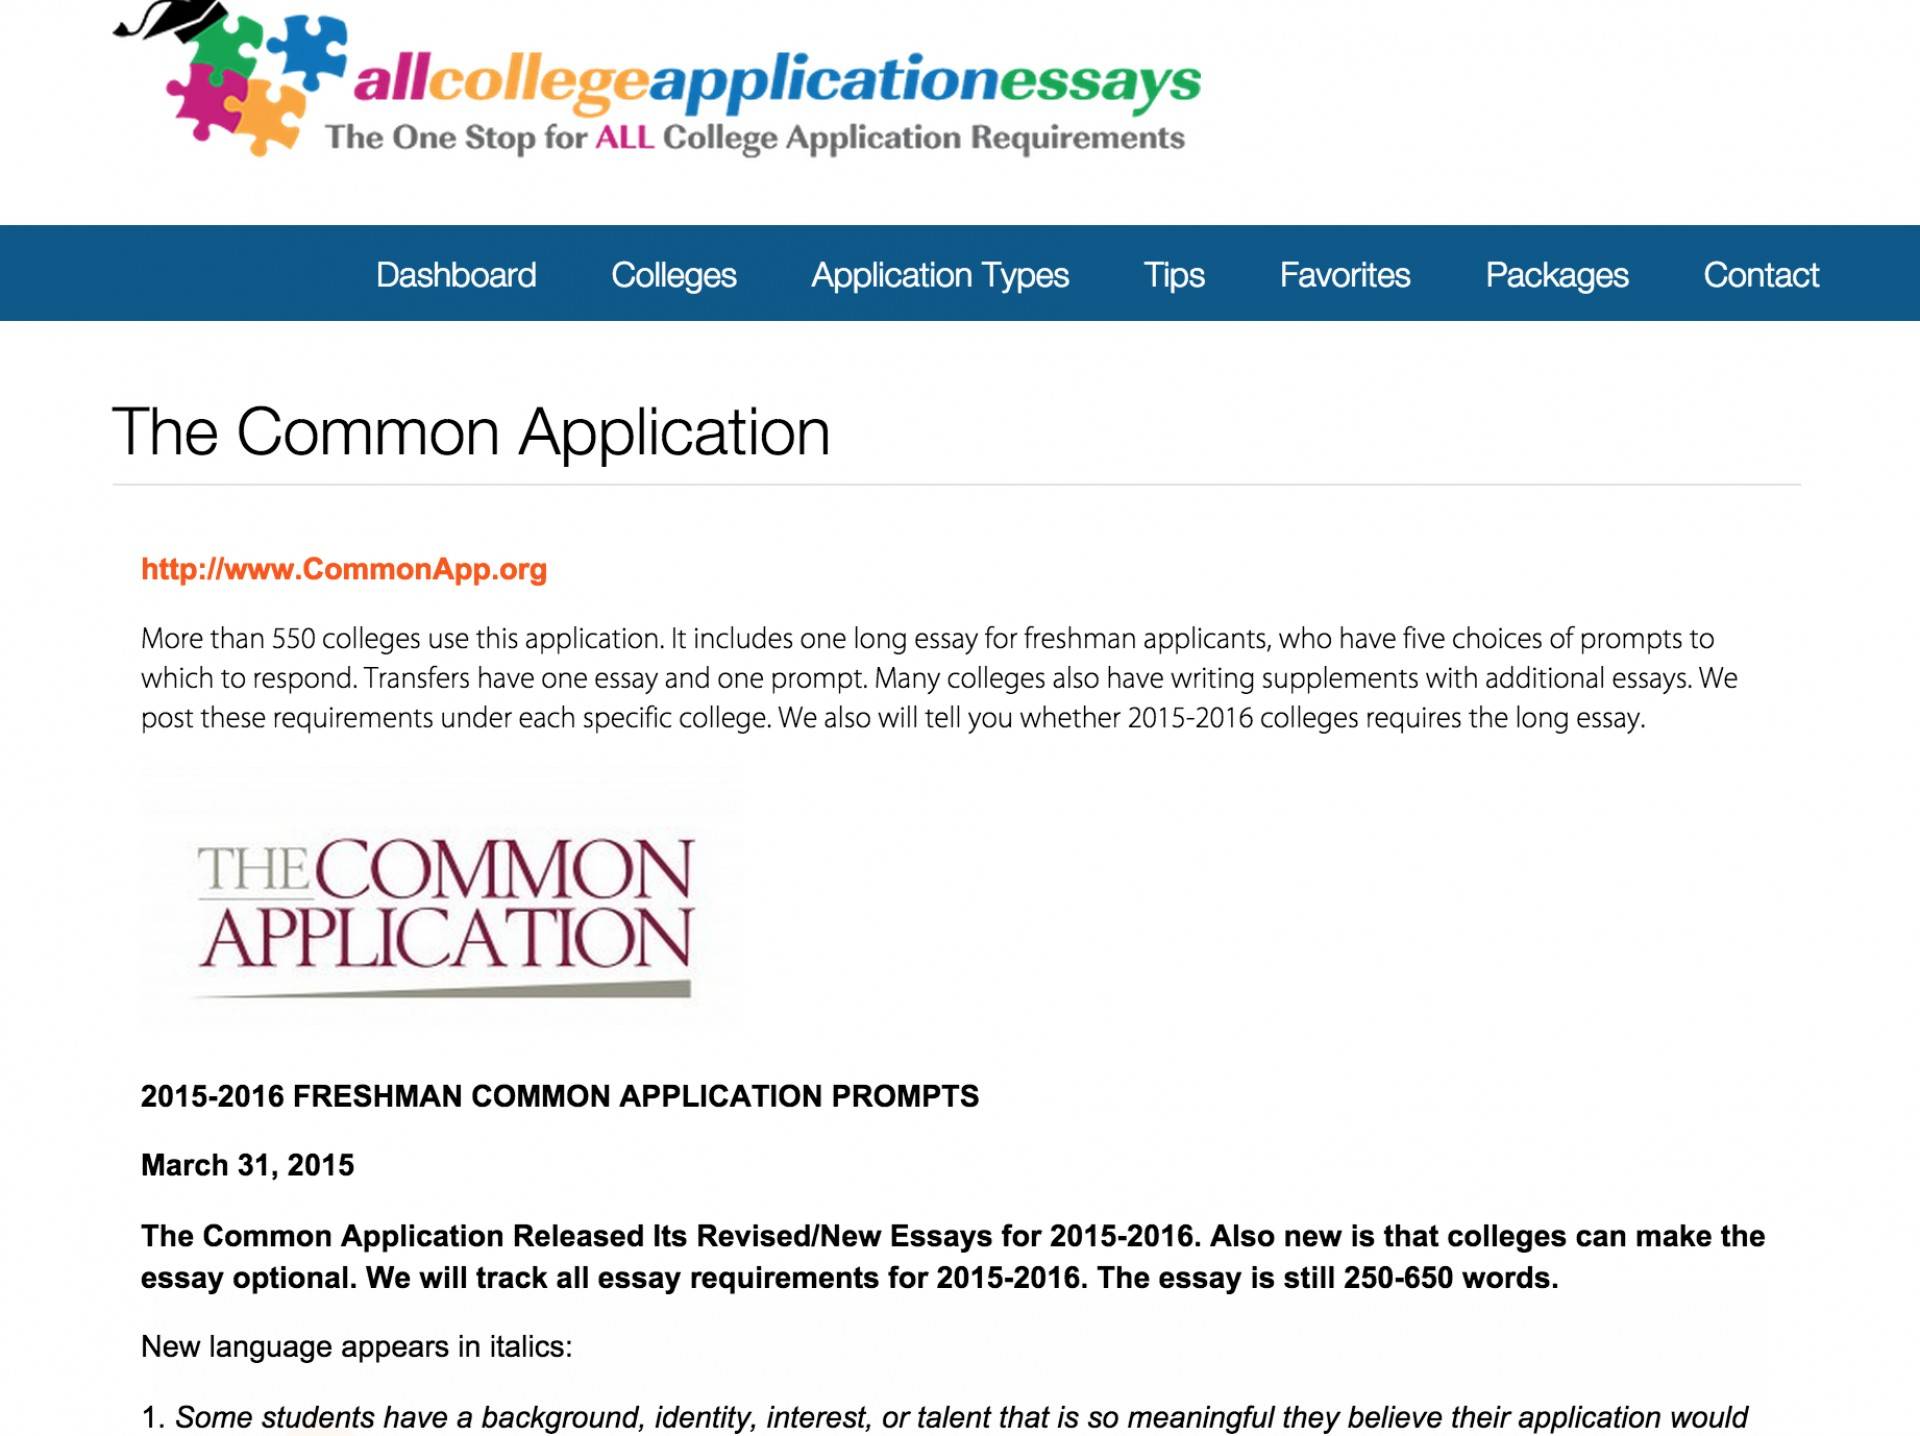 002 Common App Essay Questions Example College Help Online Admissions How To Write The Screen Shot Dreaded 2017 2017-18 1920